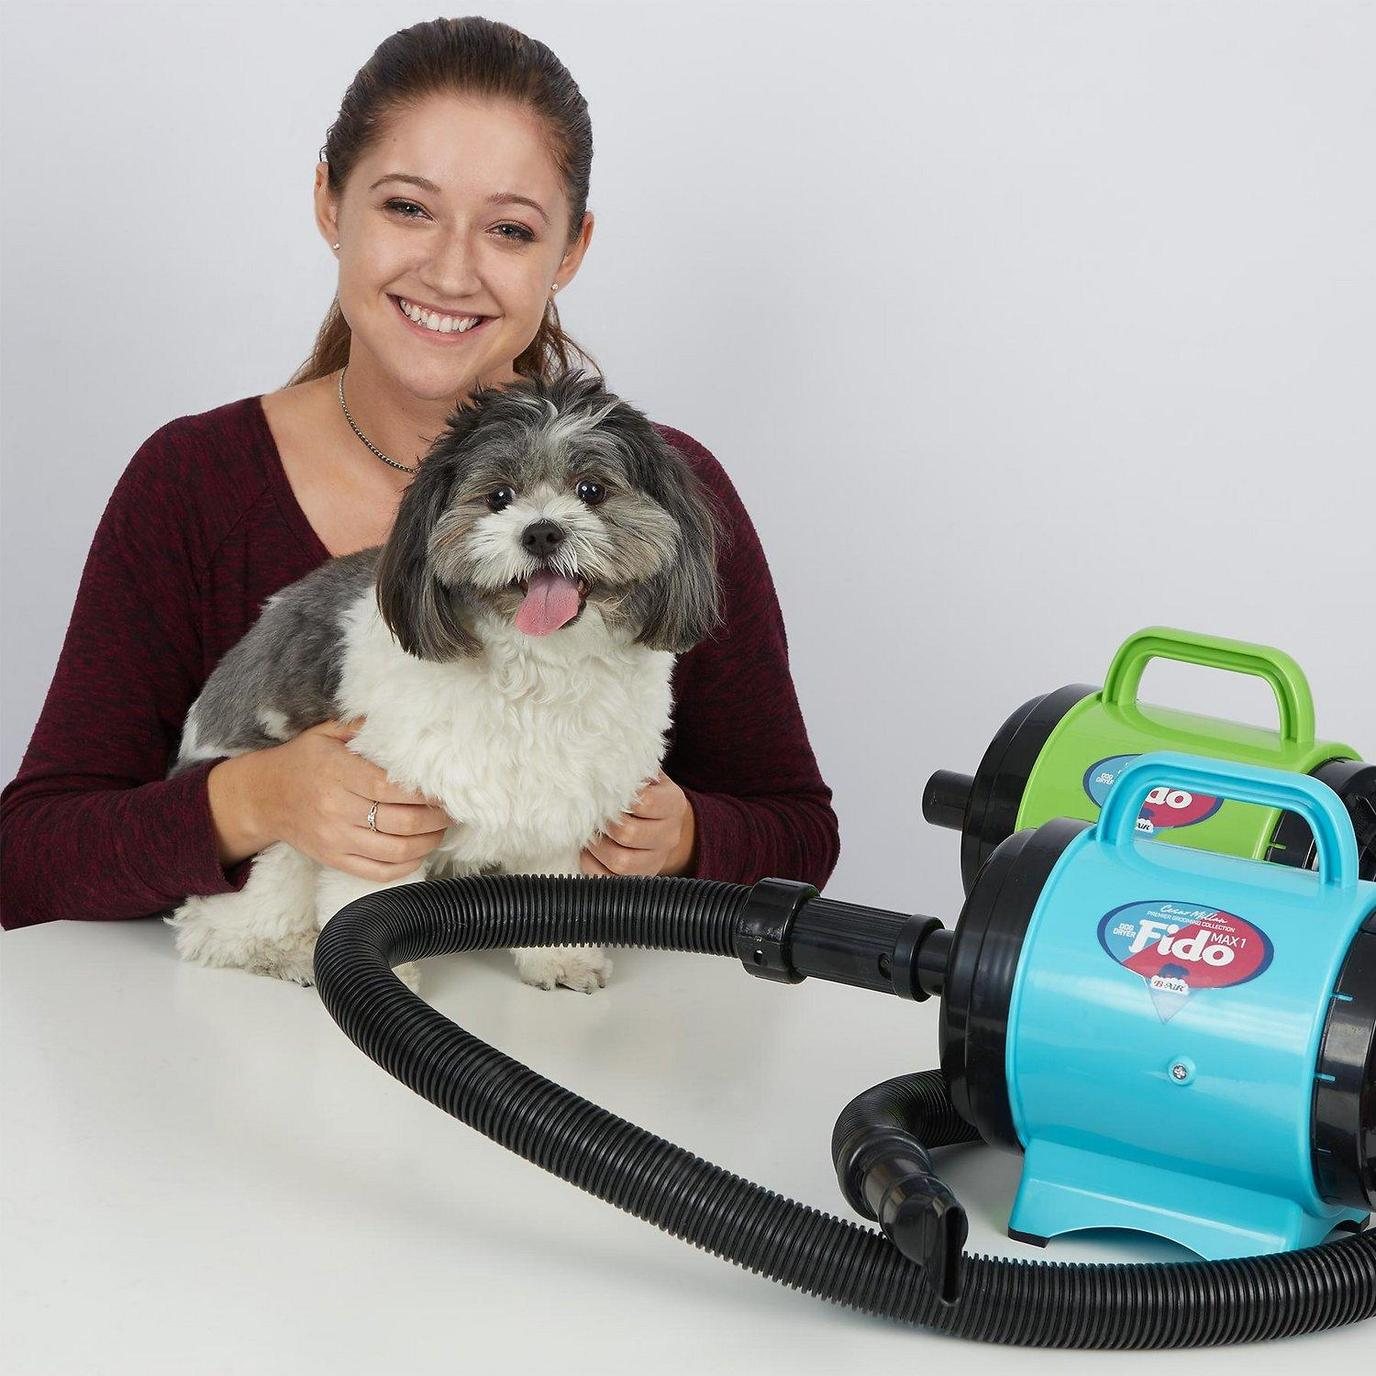 A Woman Poses With Her Dog Beside the B-Air Fido Max 1 Dog Dryer.